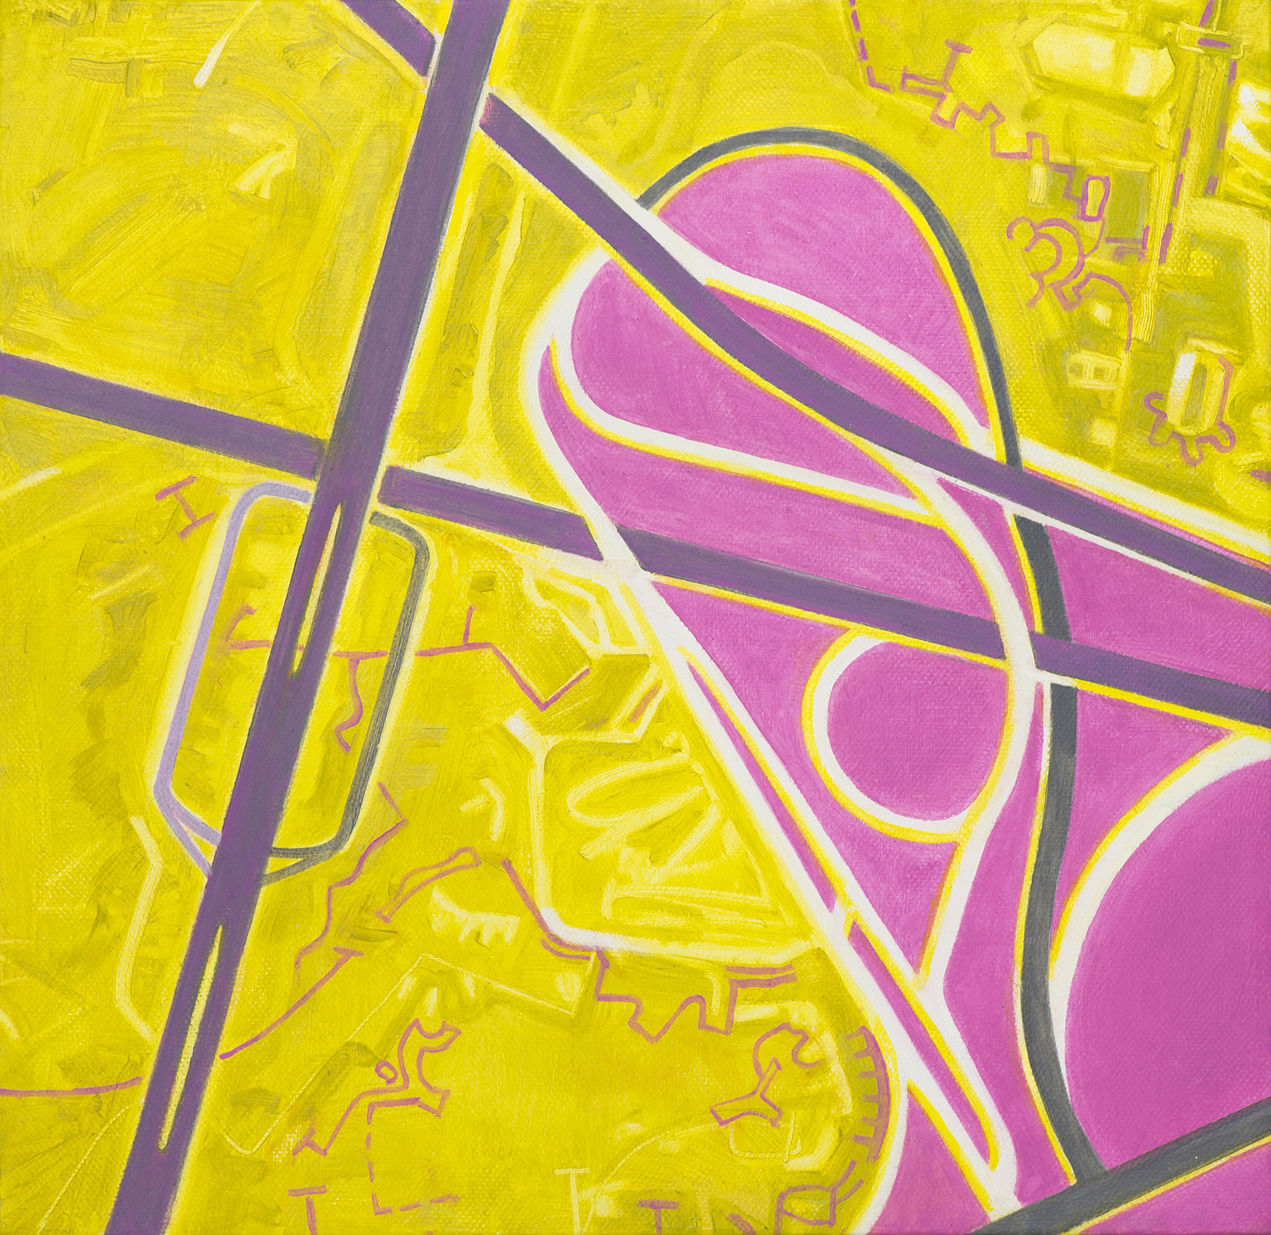 yellow and pink abstract painting symbolizing roadways